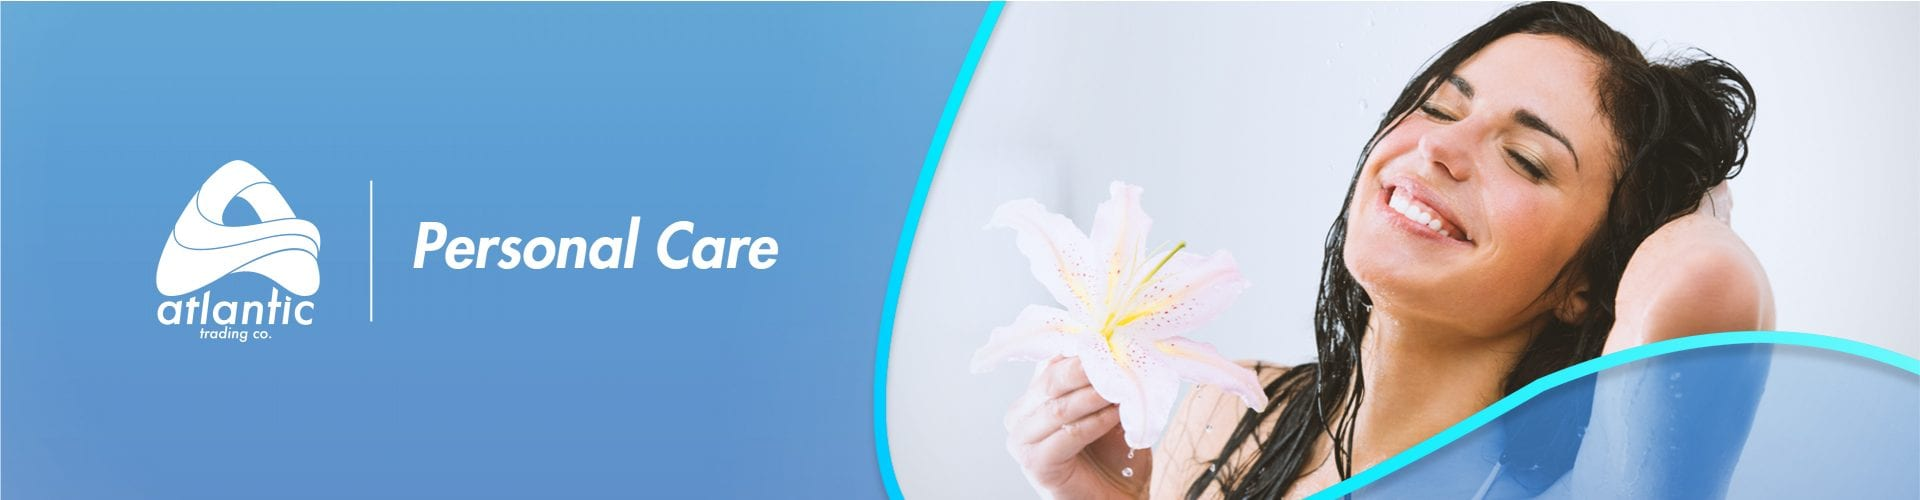 Personal Care@2x-100